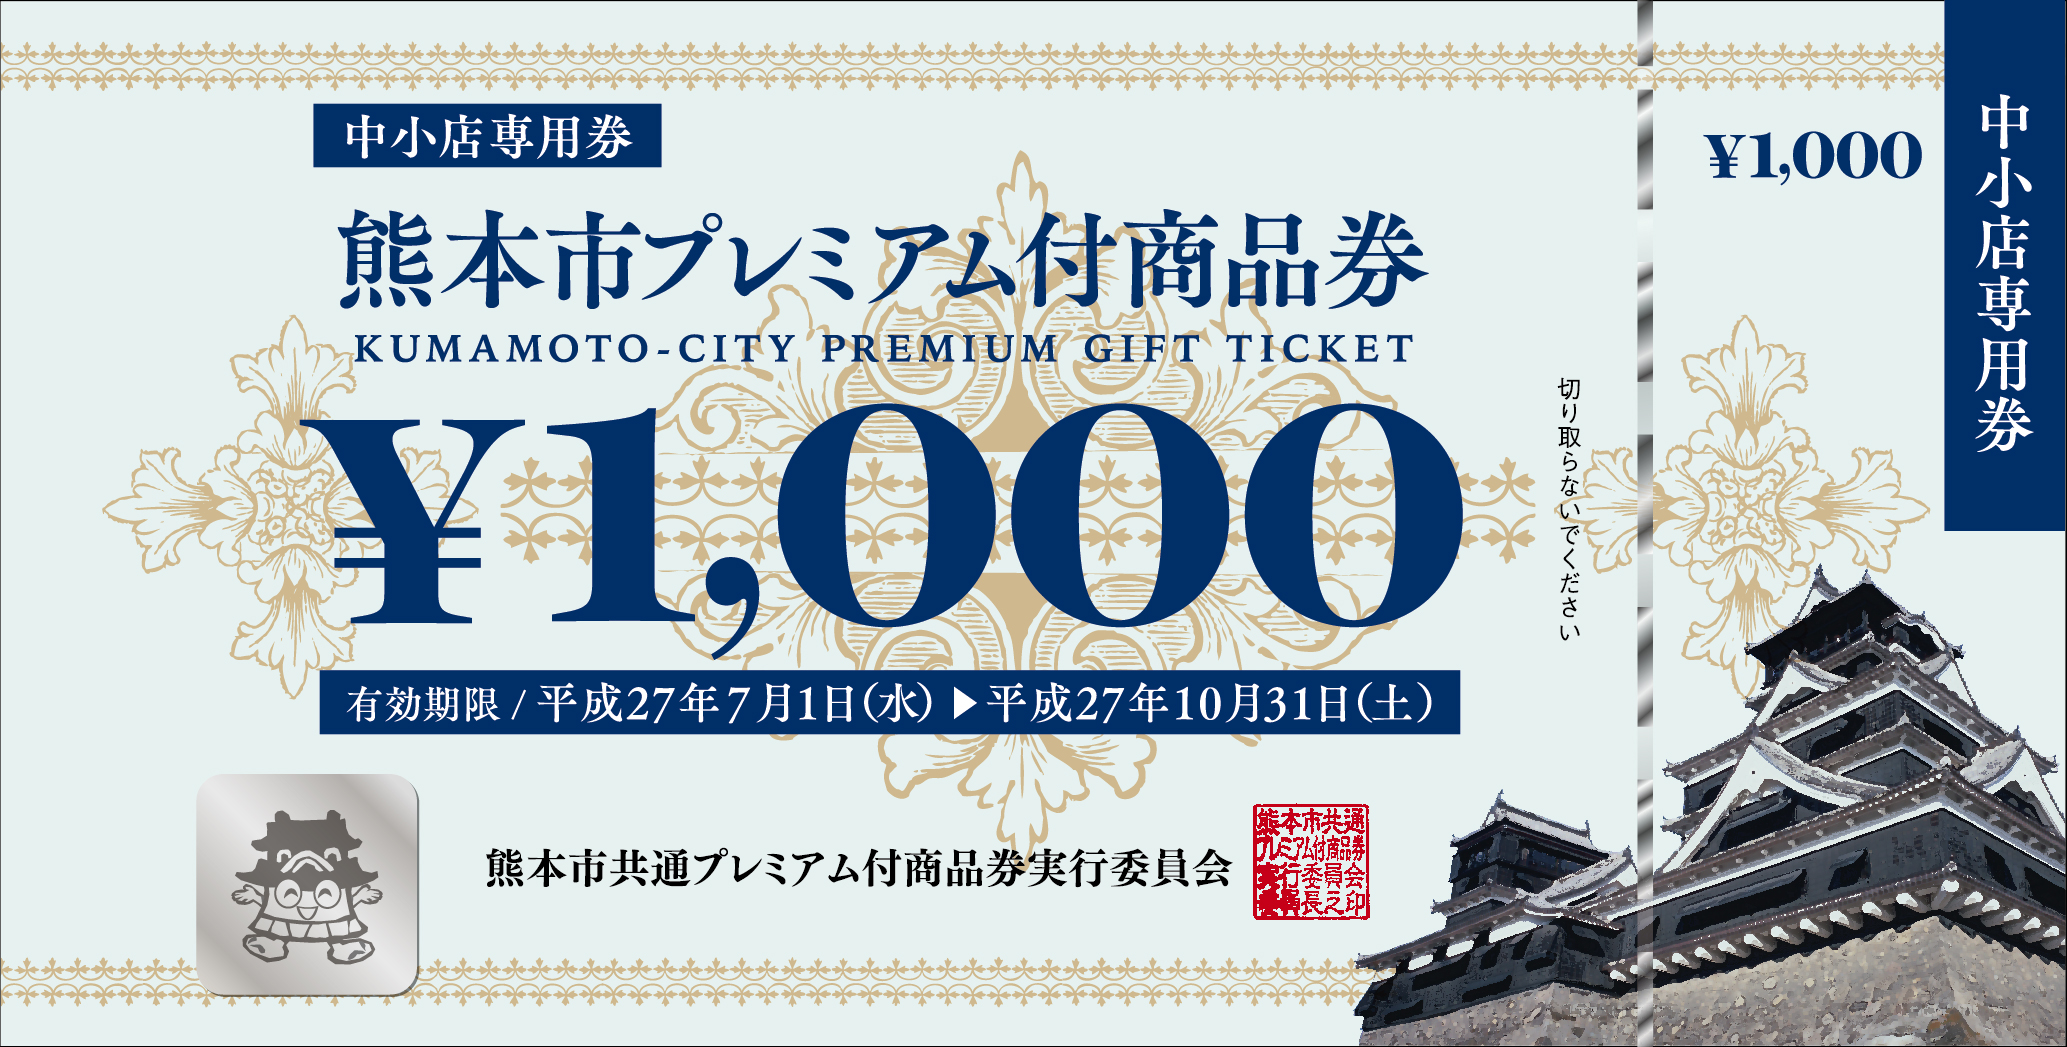 0522gift ticket2-si-03